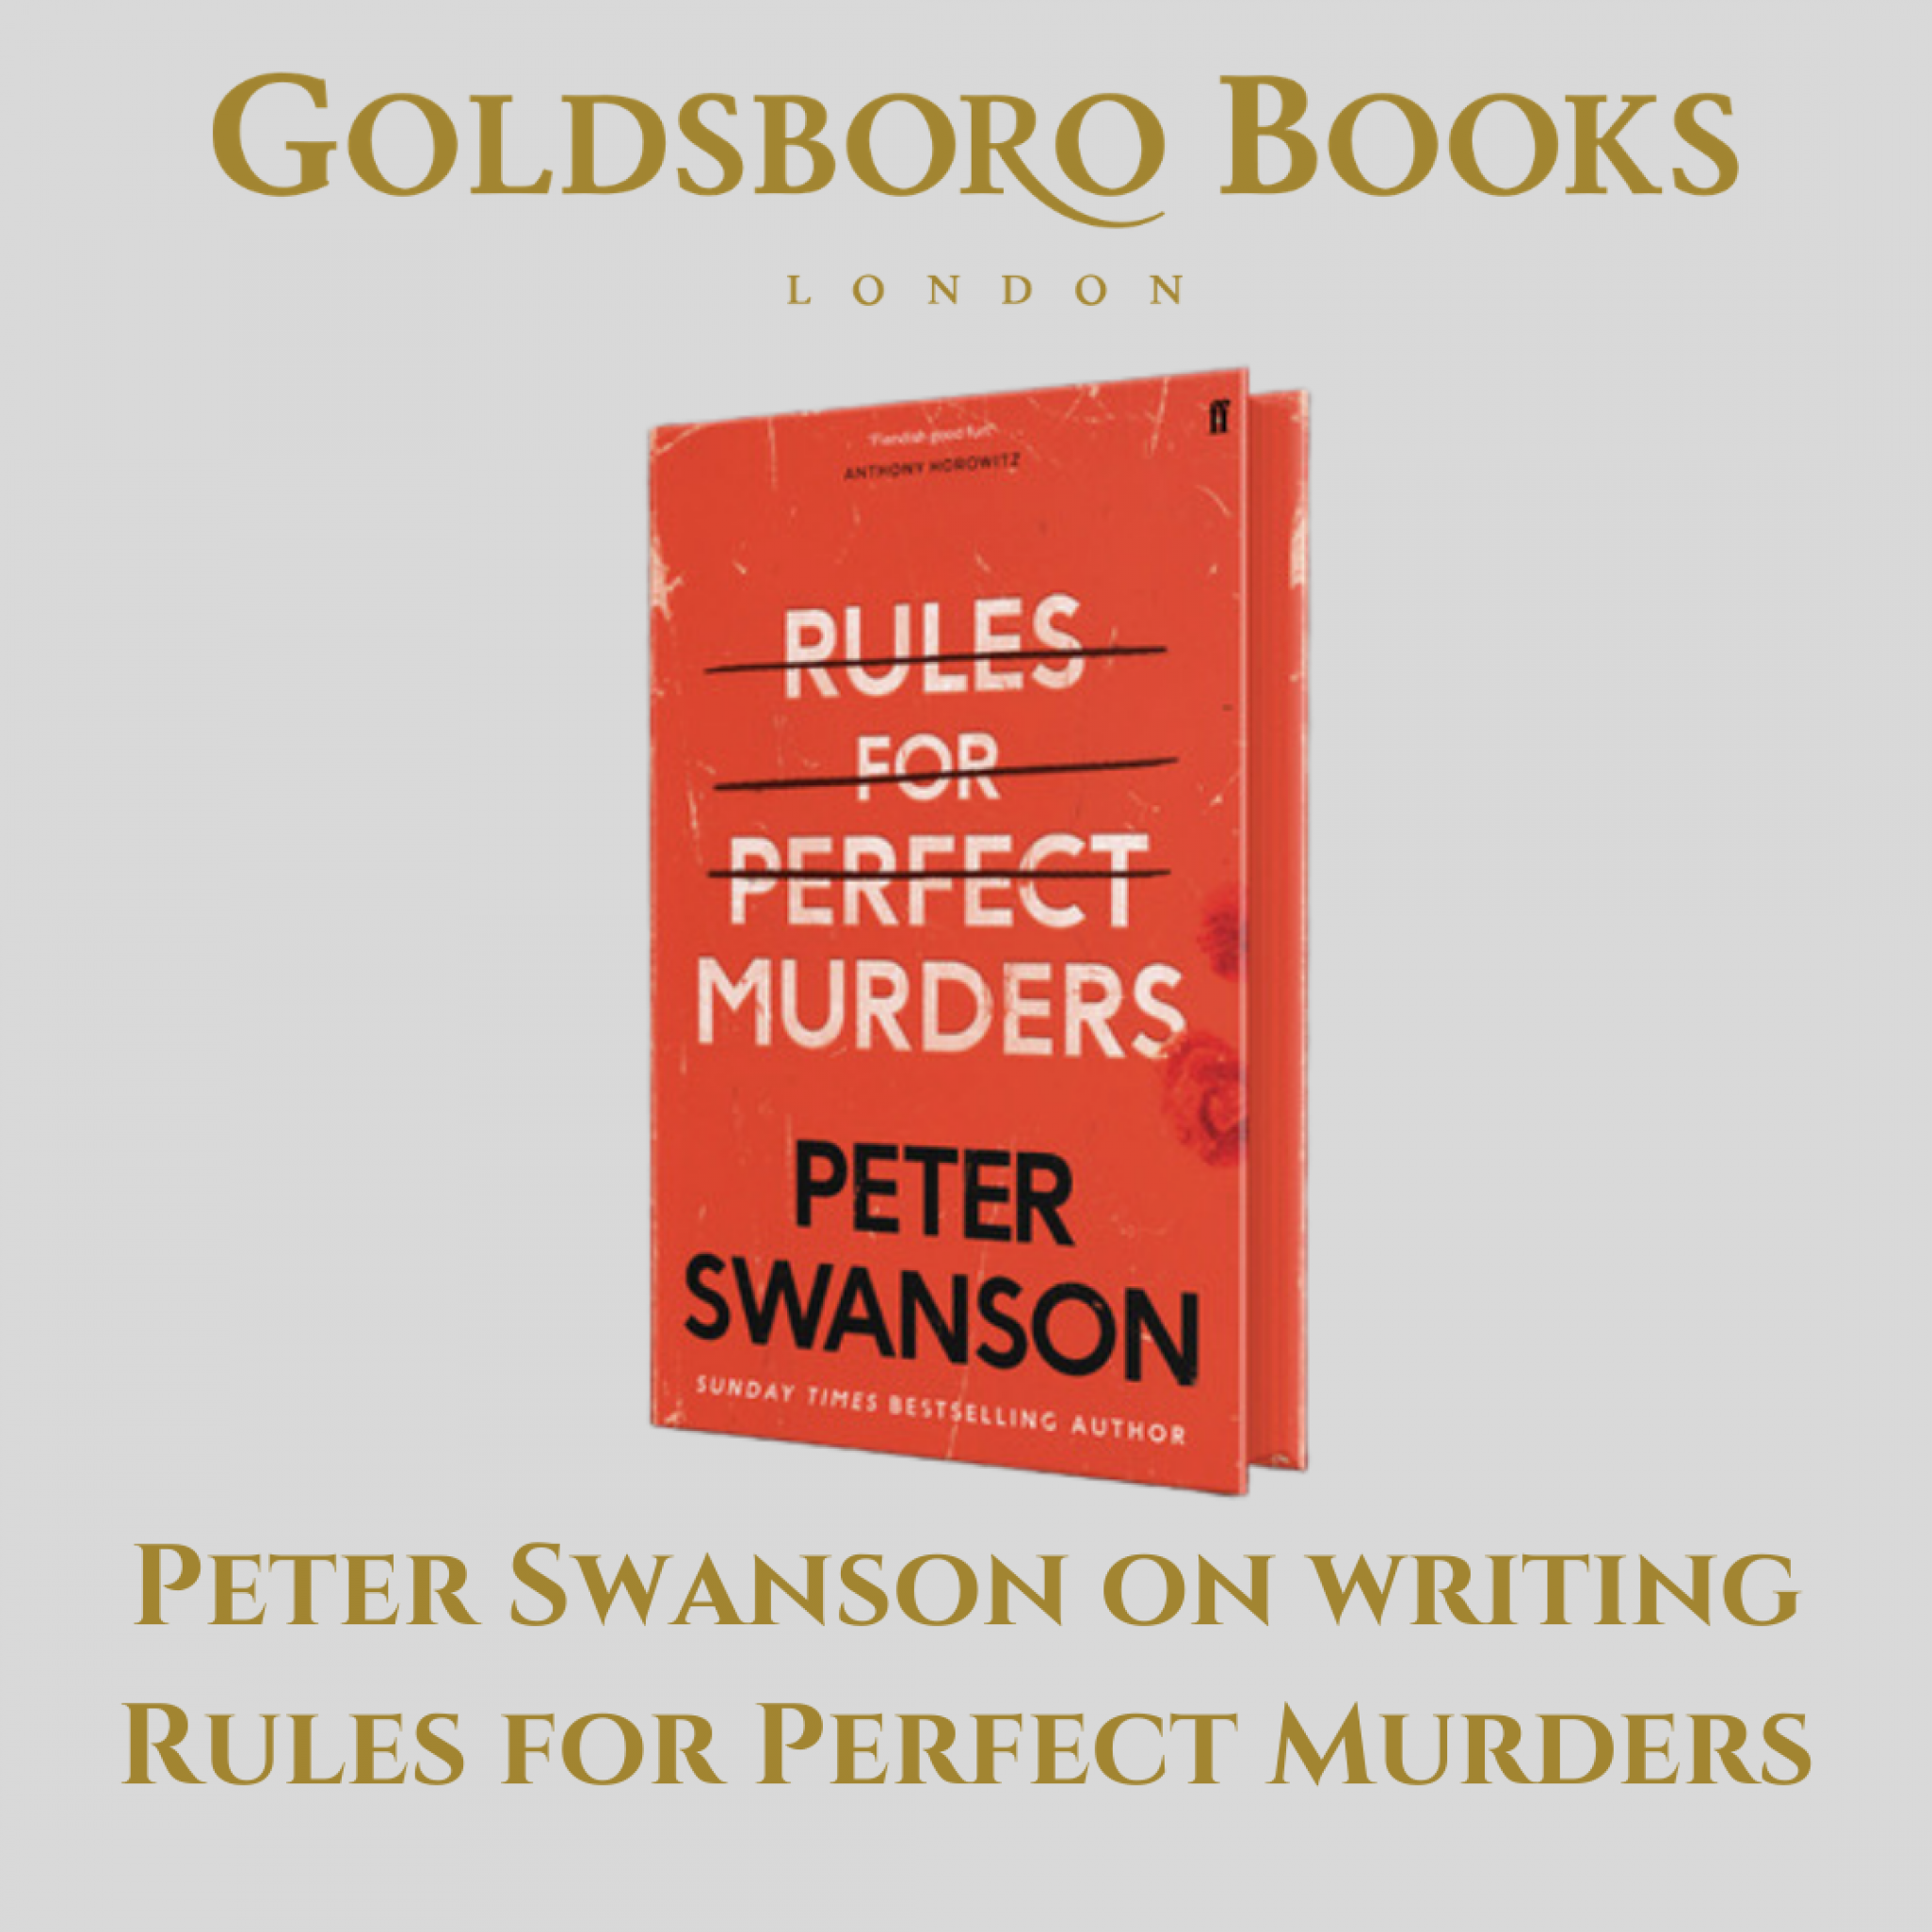 Rules for Perfect Murders: a Biography of a Reader